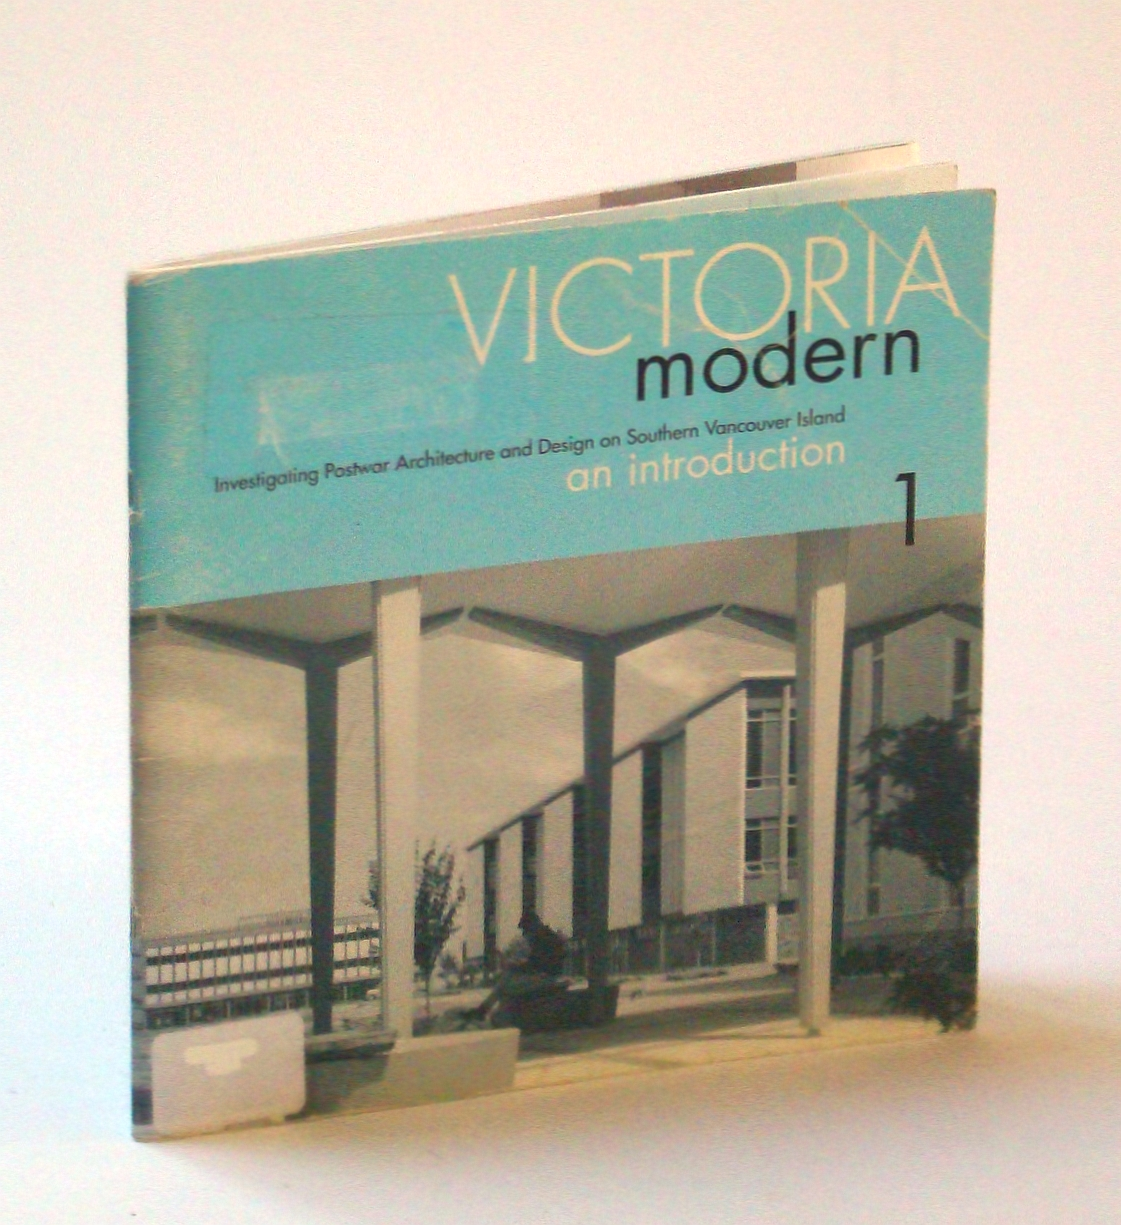 Image for Victoria Modern : Investigating Postwar Architecture and Design on Southern Vancouver Island, an Introduction